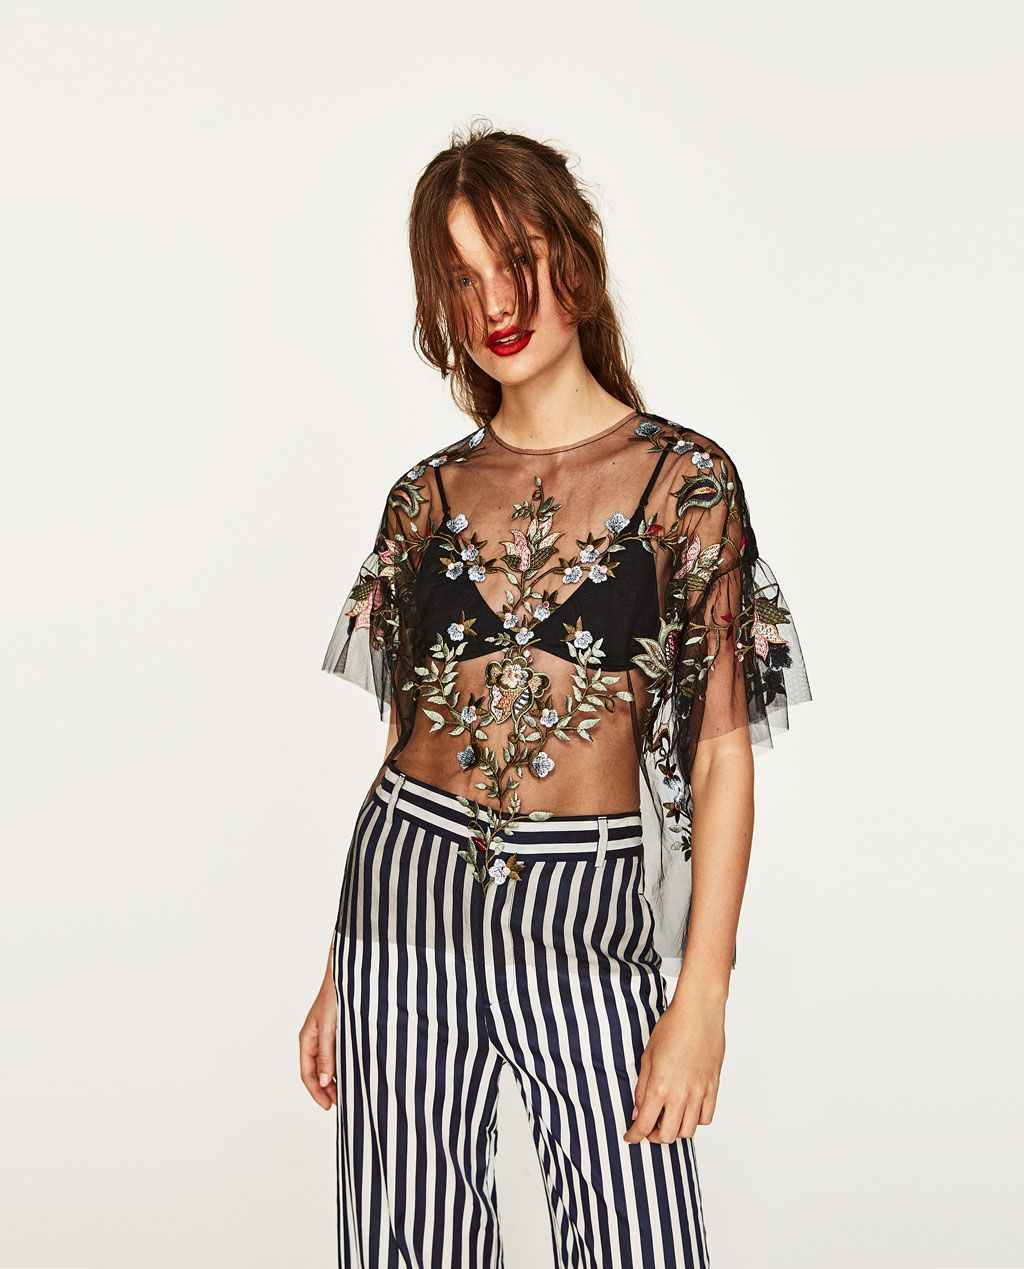 b1475d392 The Carrie Bradshaw-Approved Going-Out Top Is Back